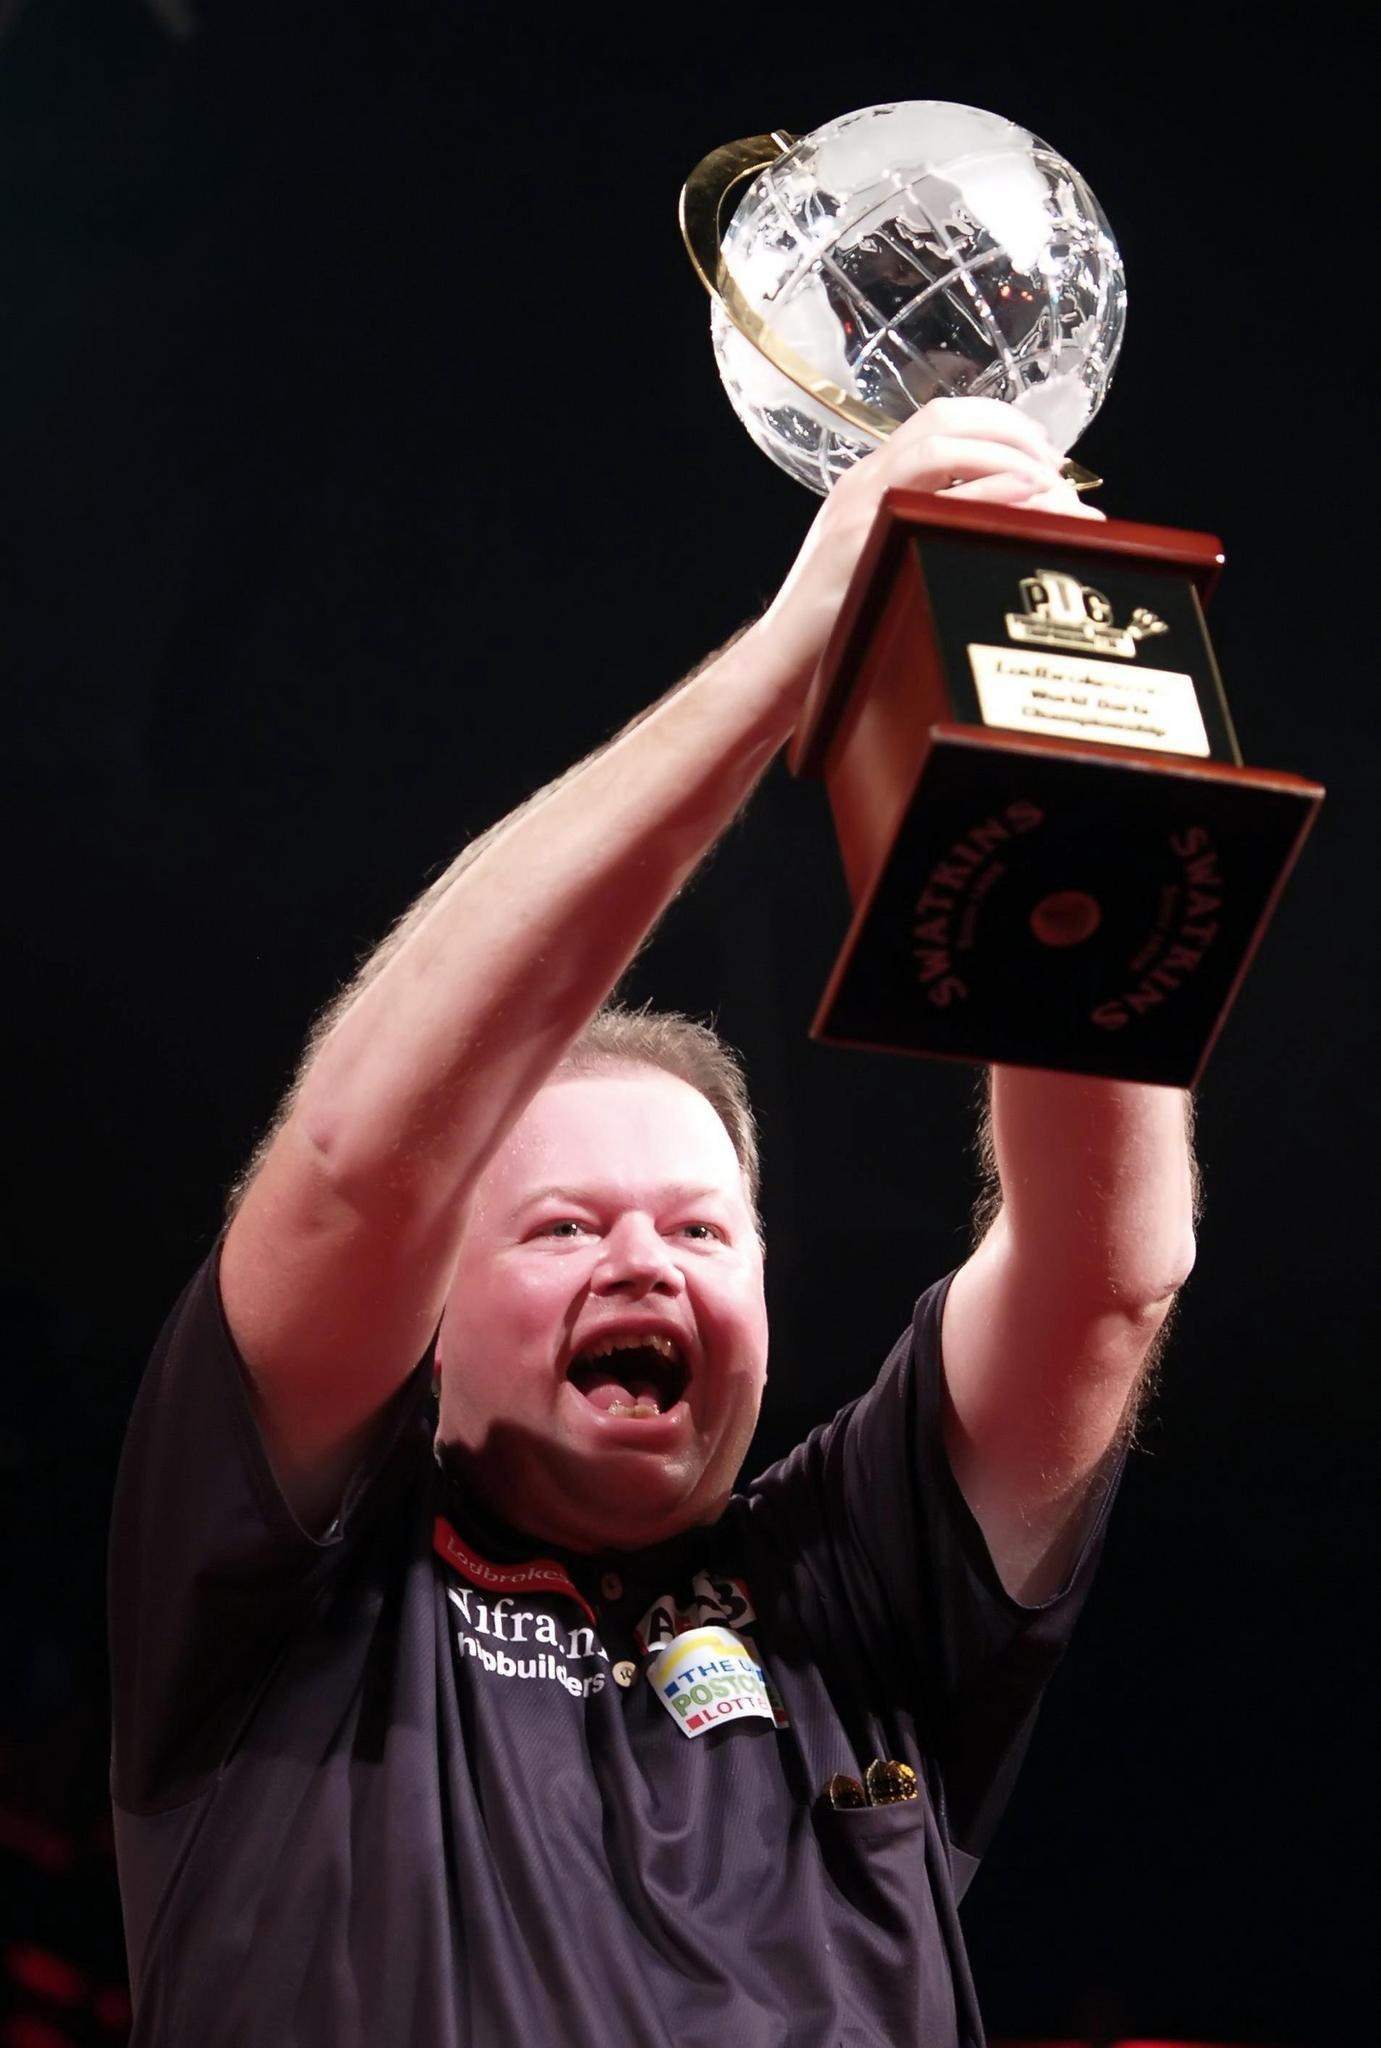 Van Barneveld won the PDC World Championship in 2007 after beating Phil Taylor